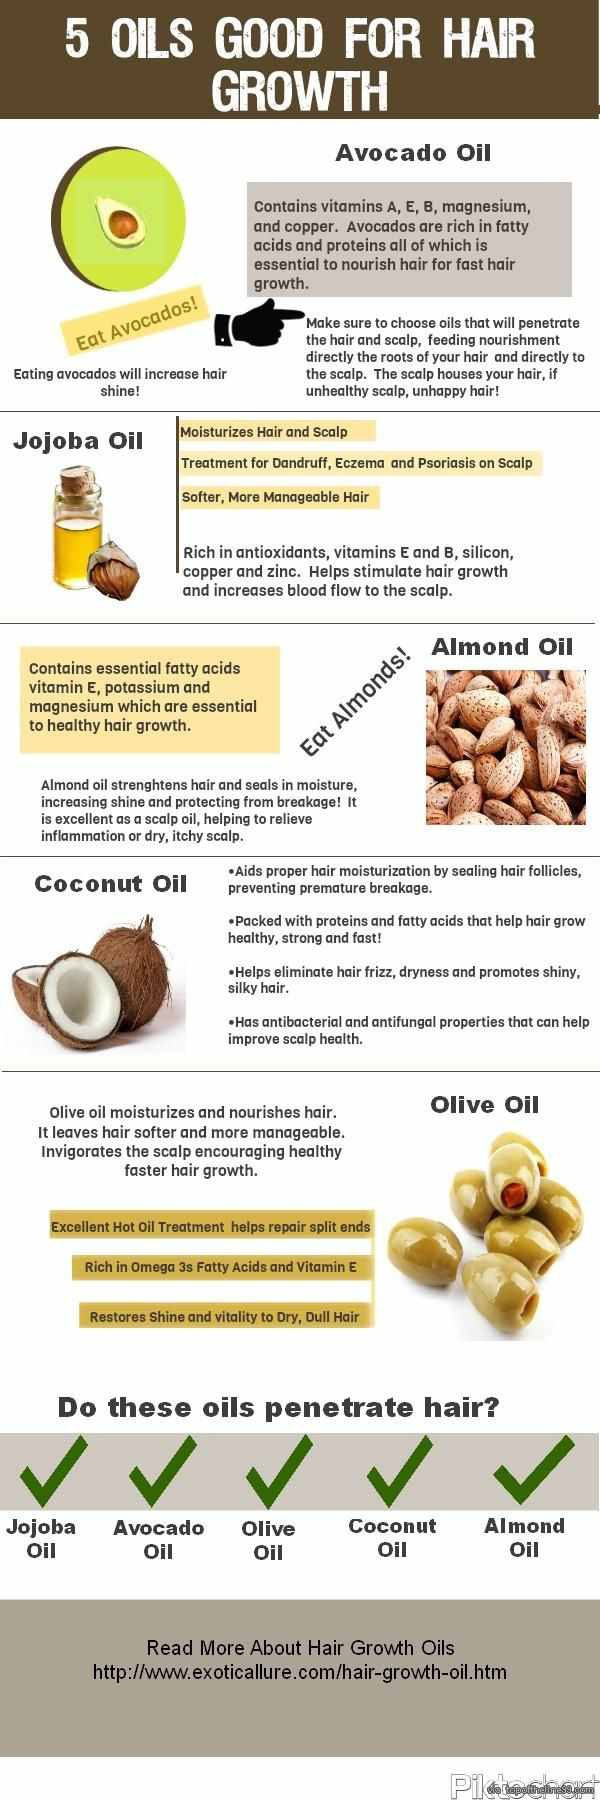 Top 5 Oils To Use For Hair Growth Infographic